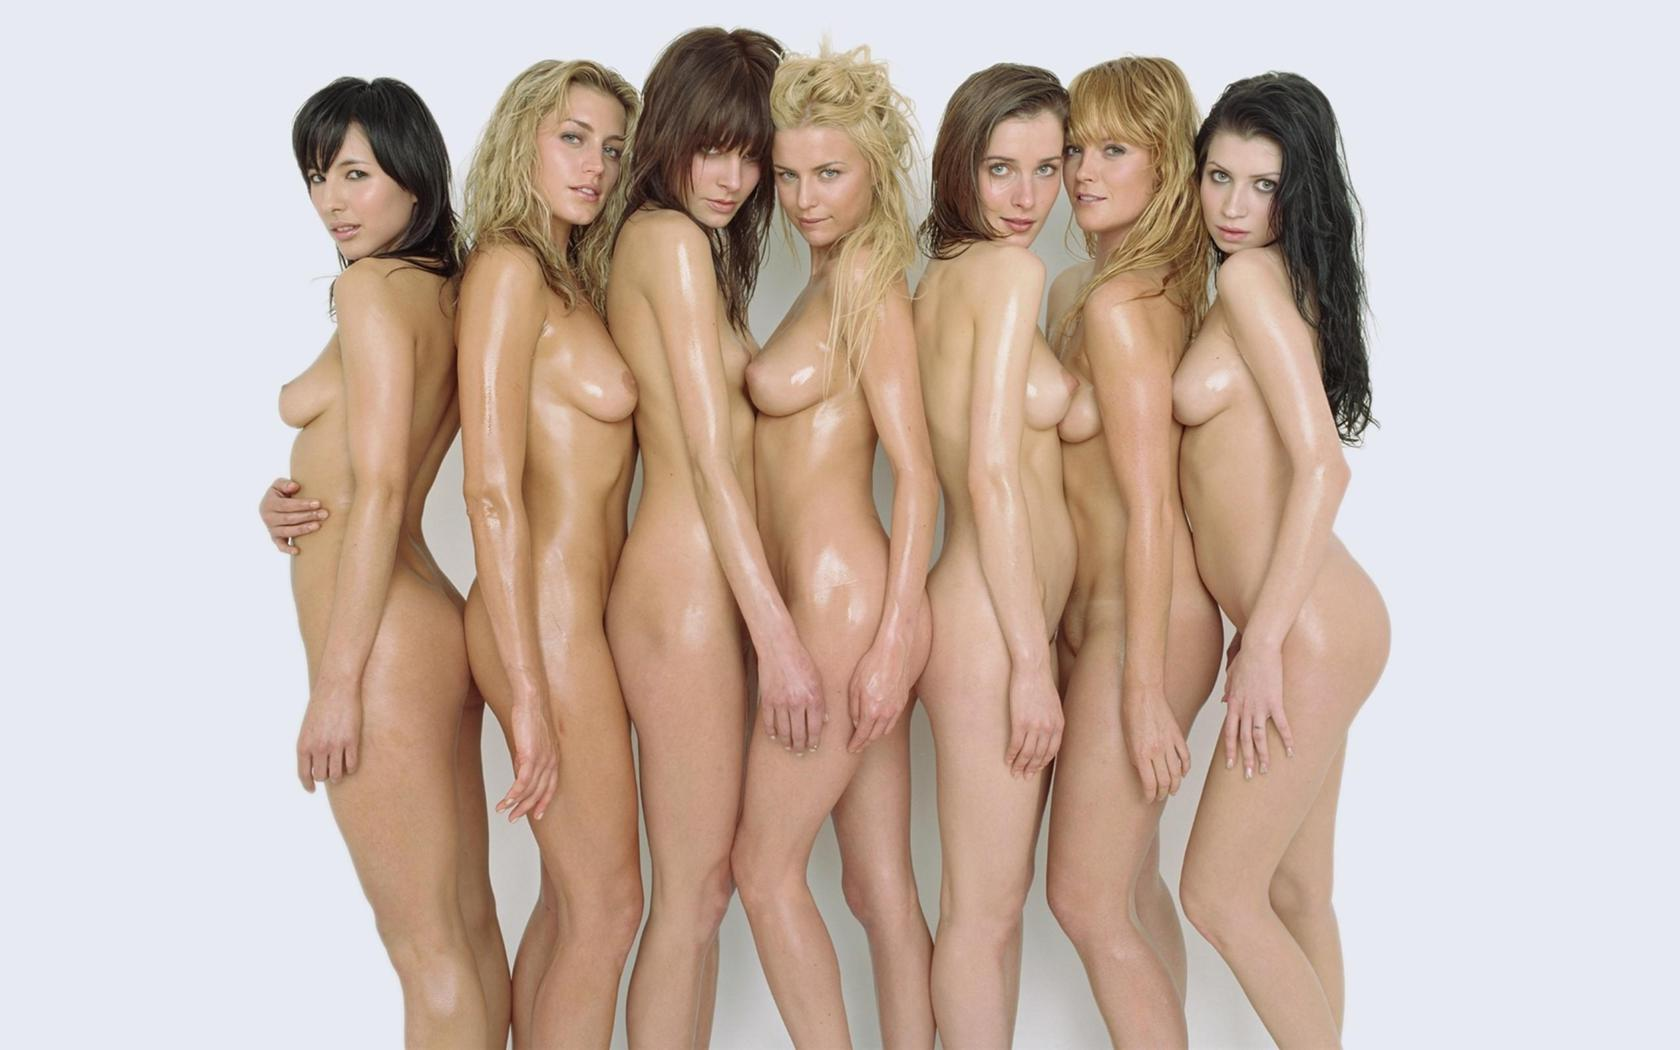 a group of naked women